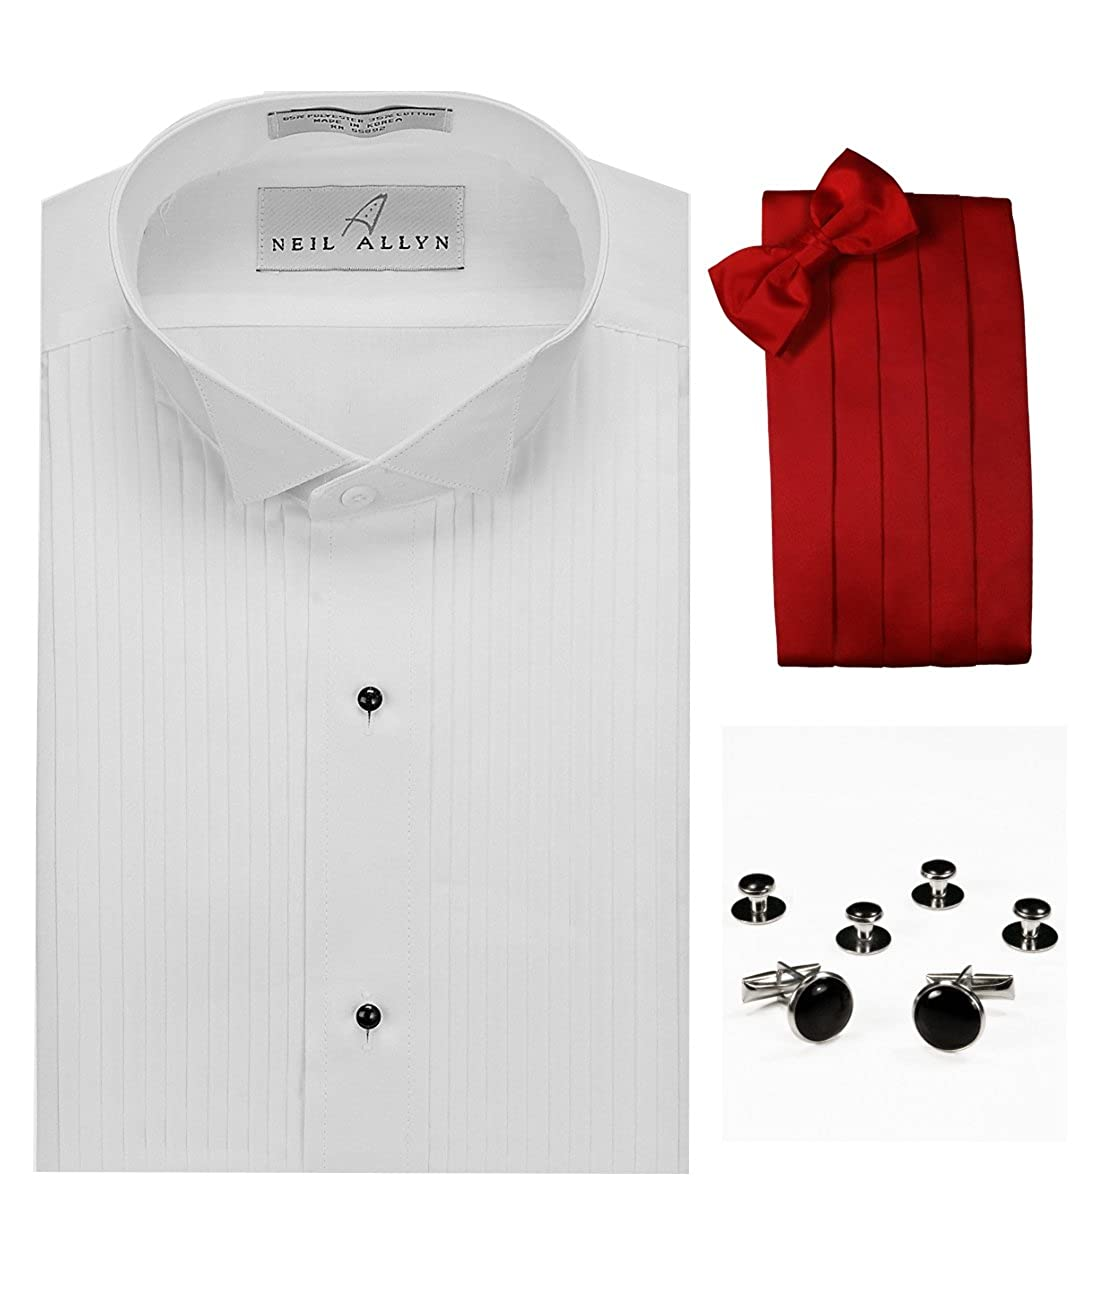 Neil Allyn Wing Collar Tuxedo Shirt, Red Cummerbund, Bow-Tie, Cuff Links & Studs Set